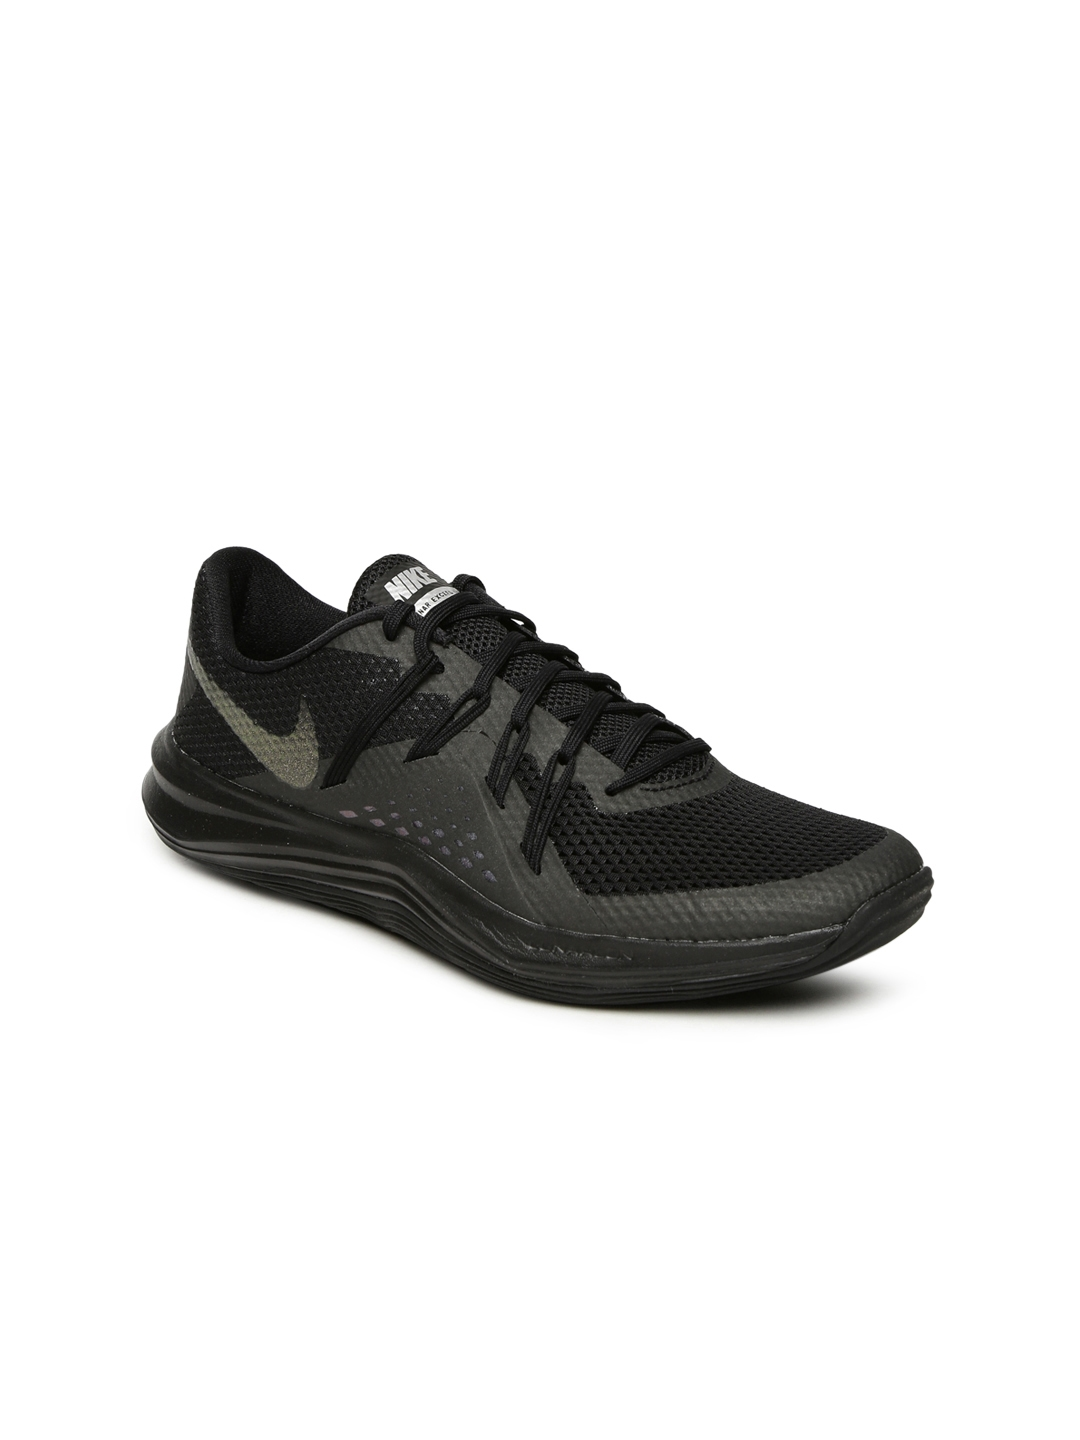 online retailer 46ecc 08683 11507698186369-Nike-Women-Charcoal-Training-or-Gym-Shoes-7251507698186225-1.jpg